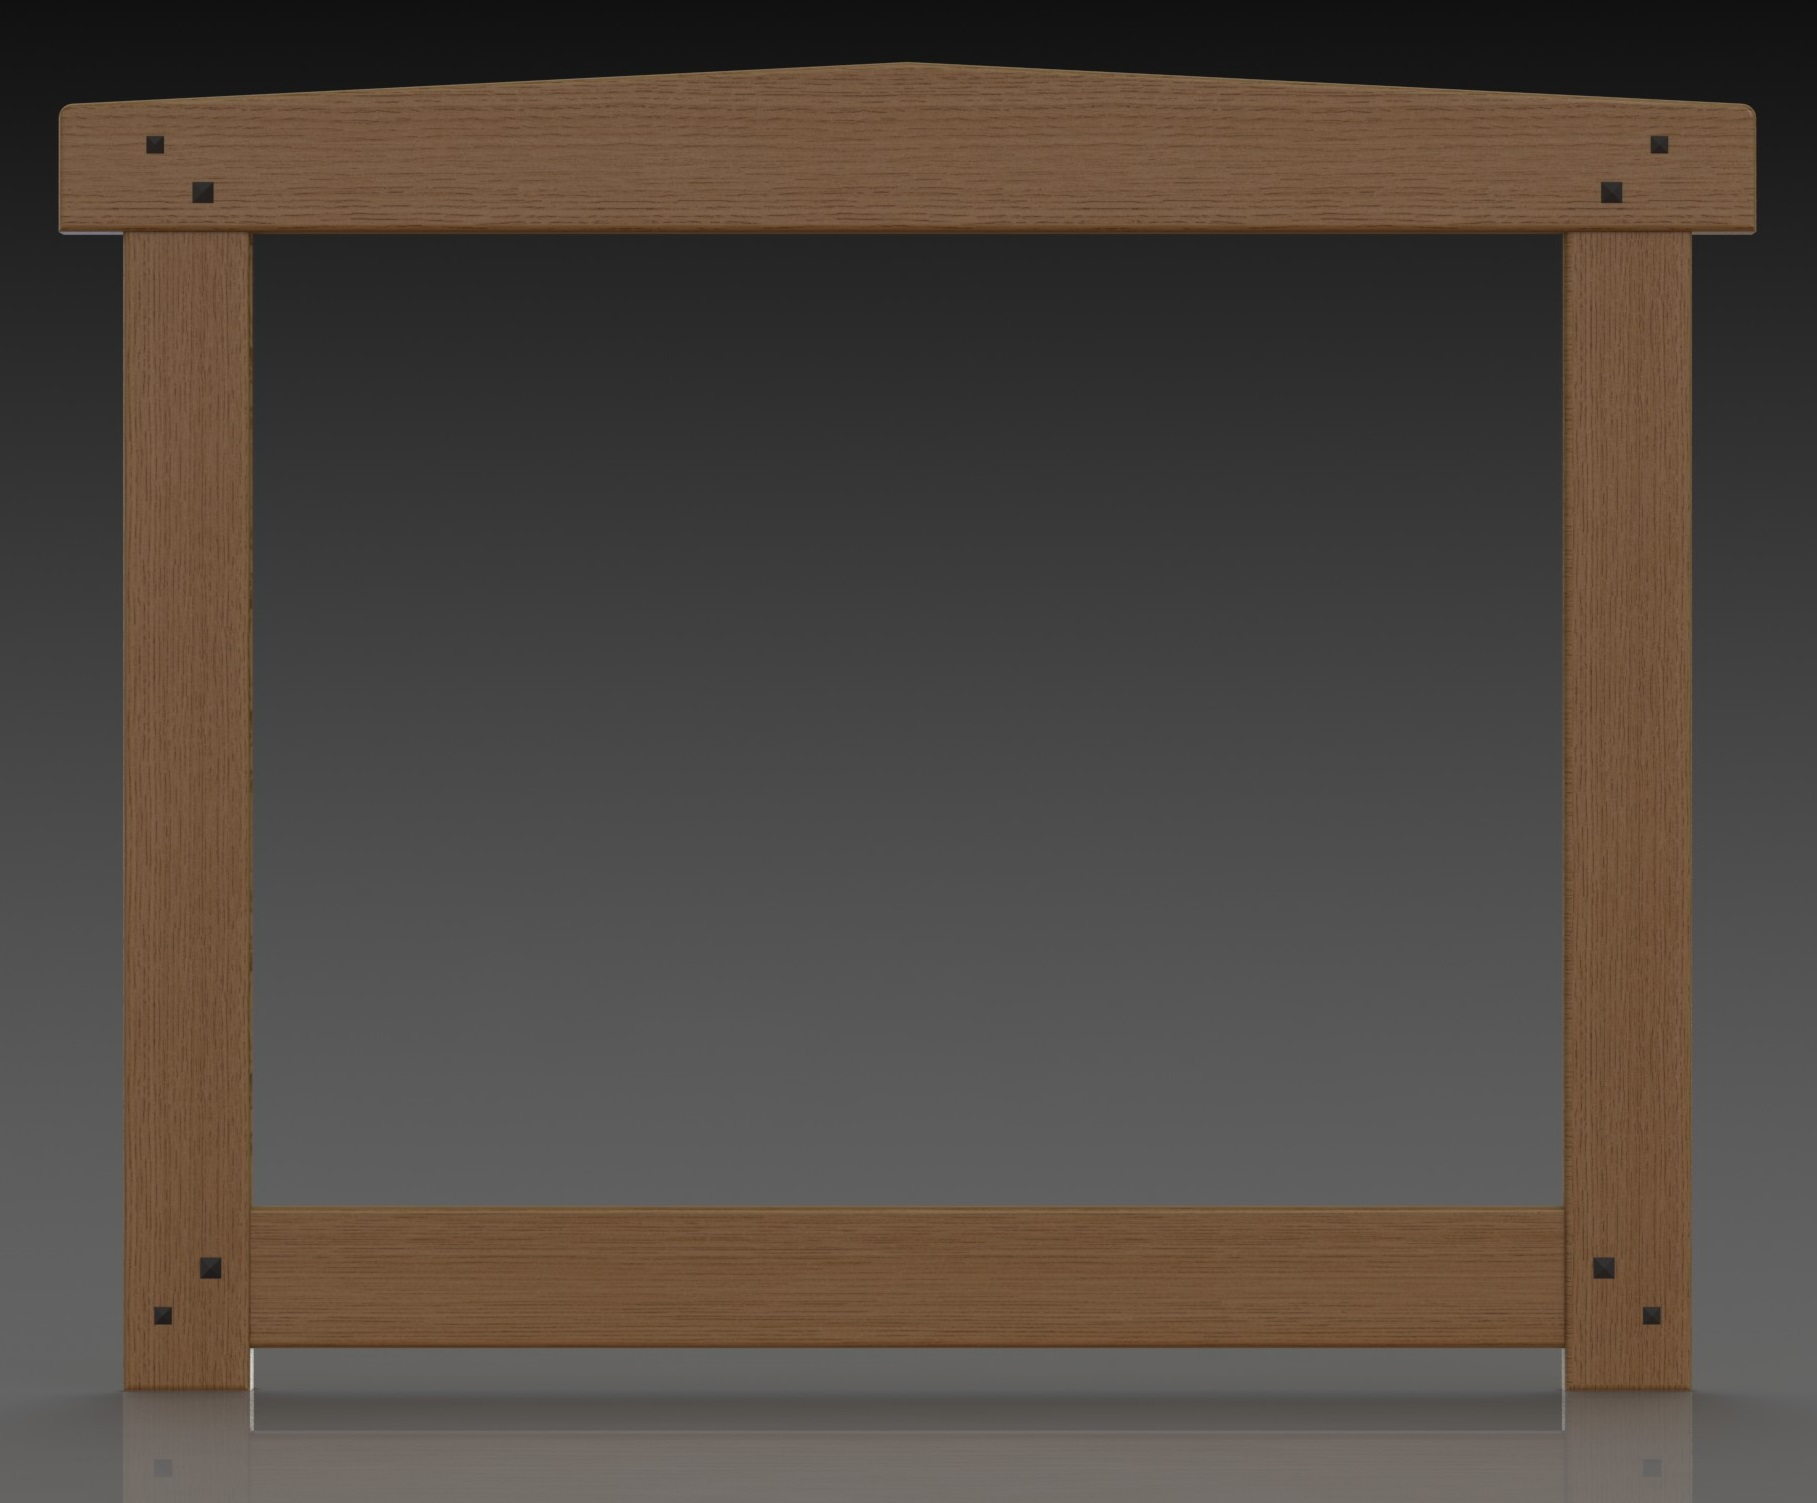 mission style picture frame mcglynn